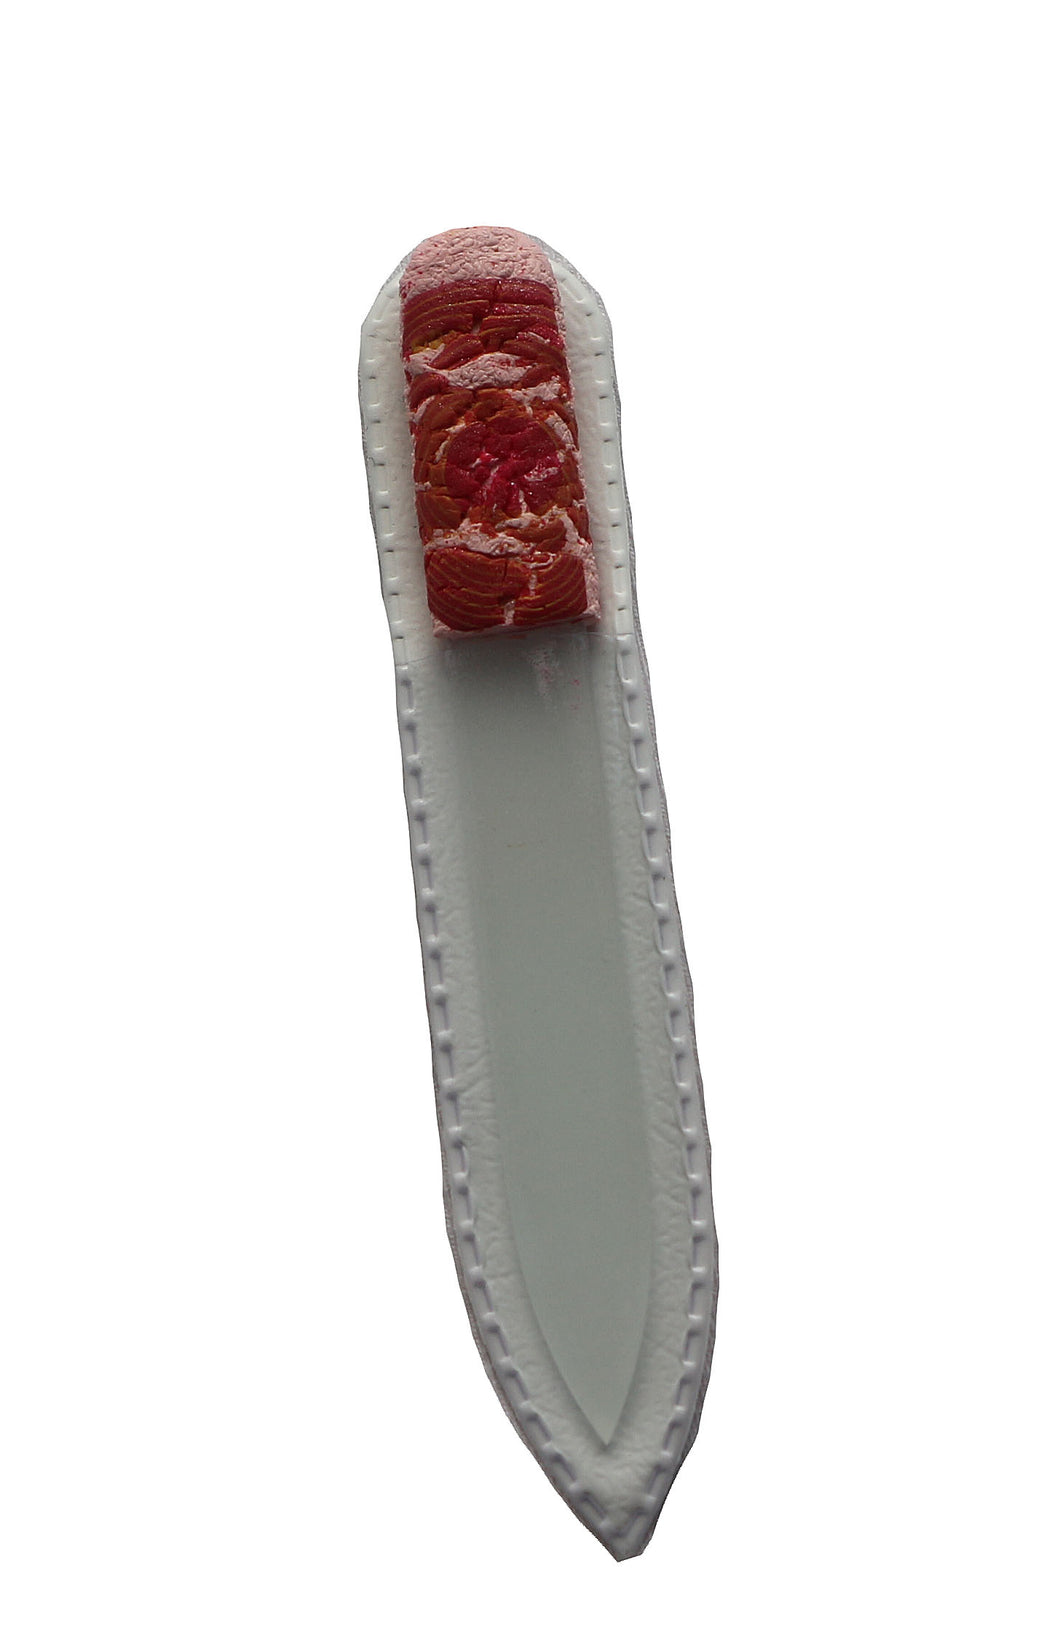 Crystal Nail File-Small-Pink Red Crackle